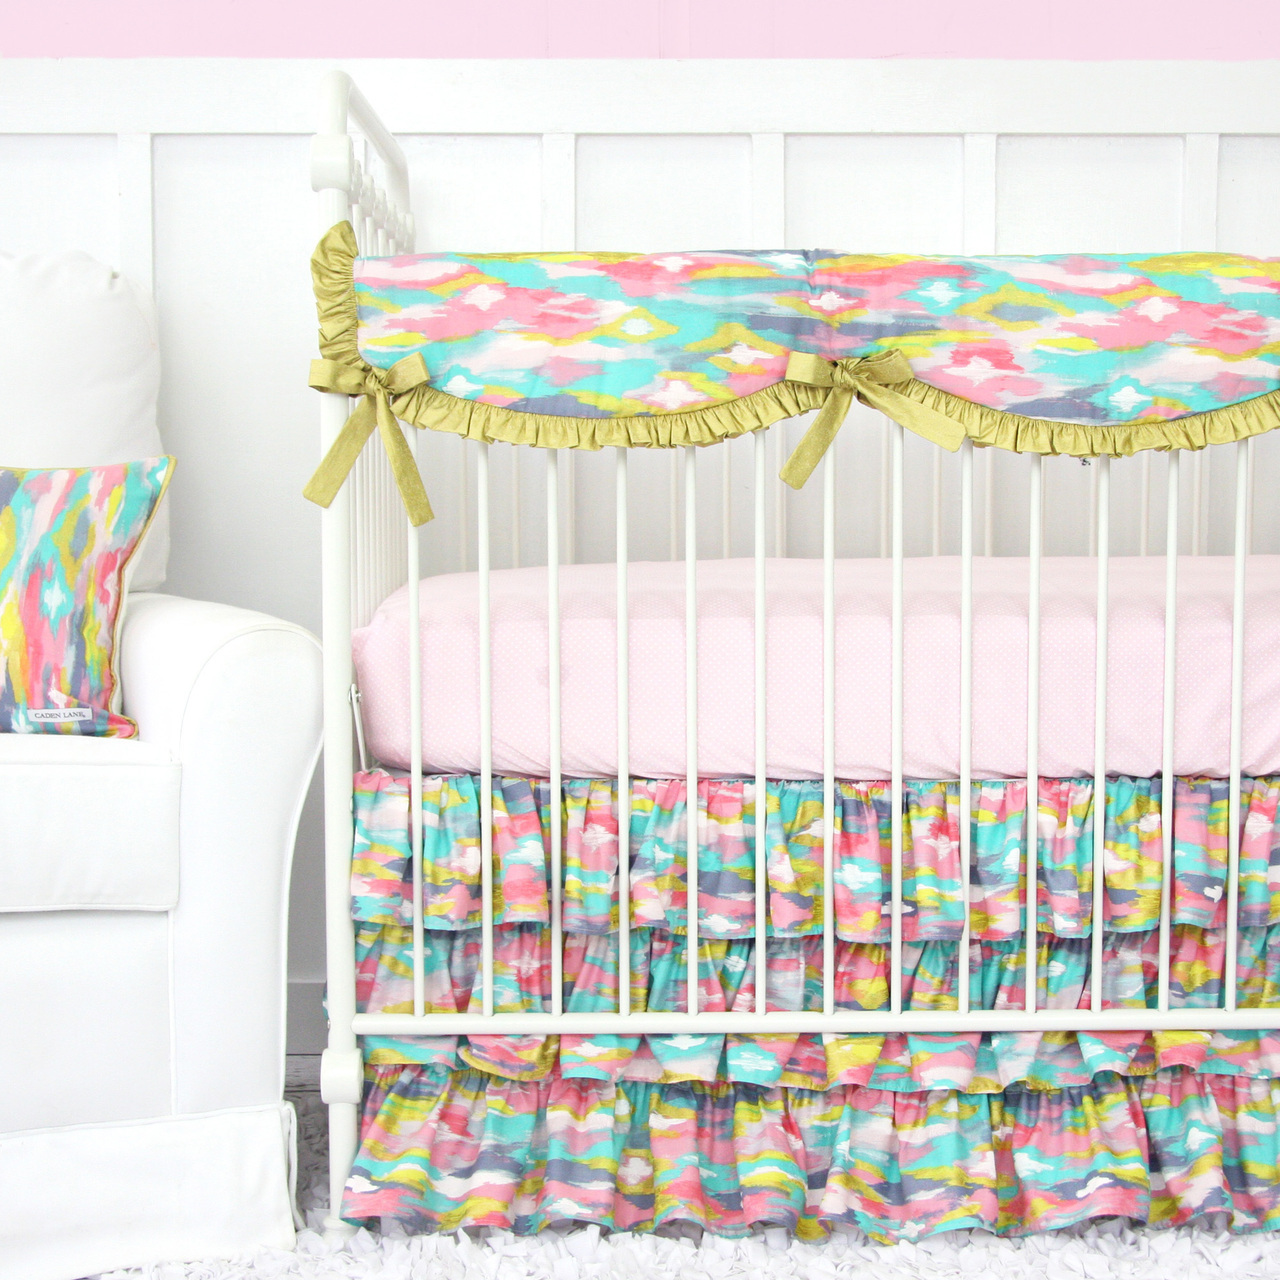 Pastel Nursery Design With Bright Baby Bedding